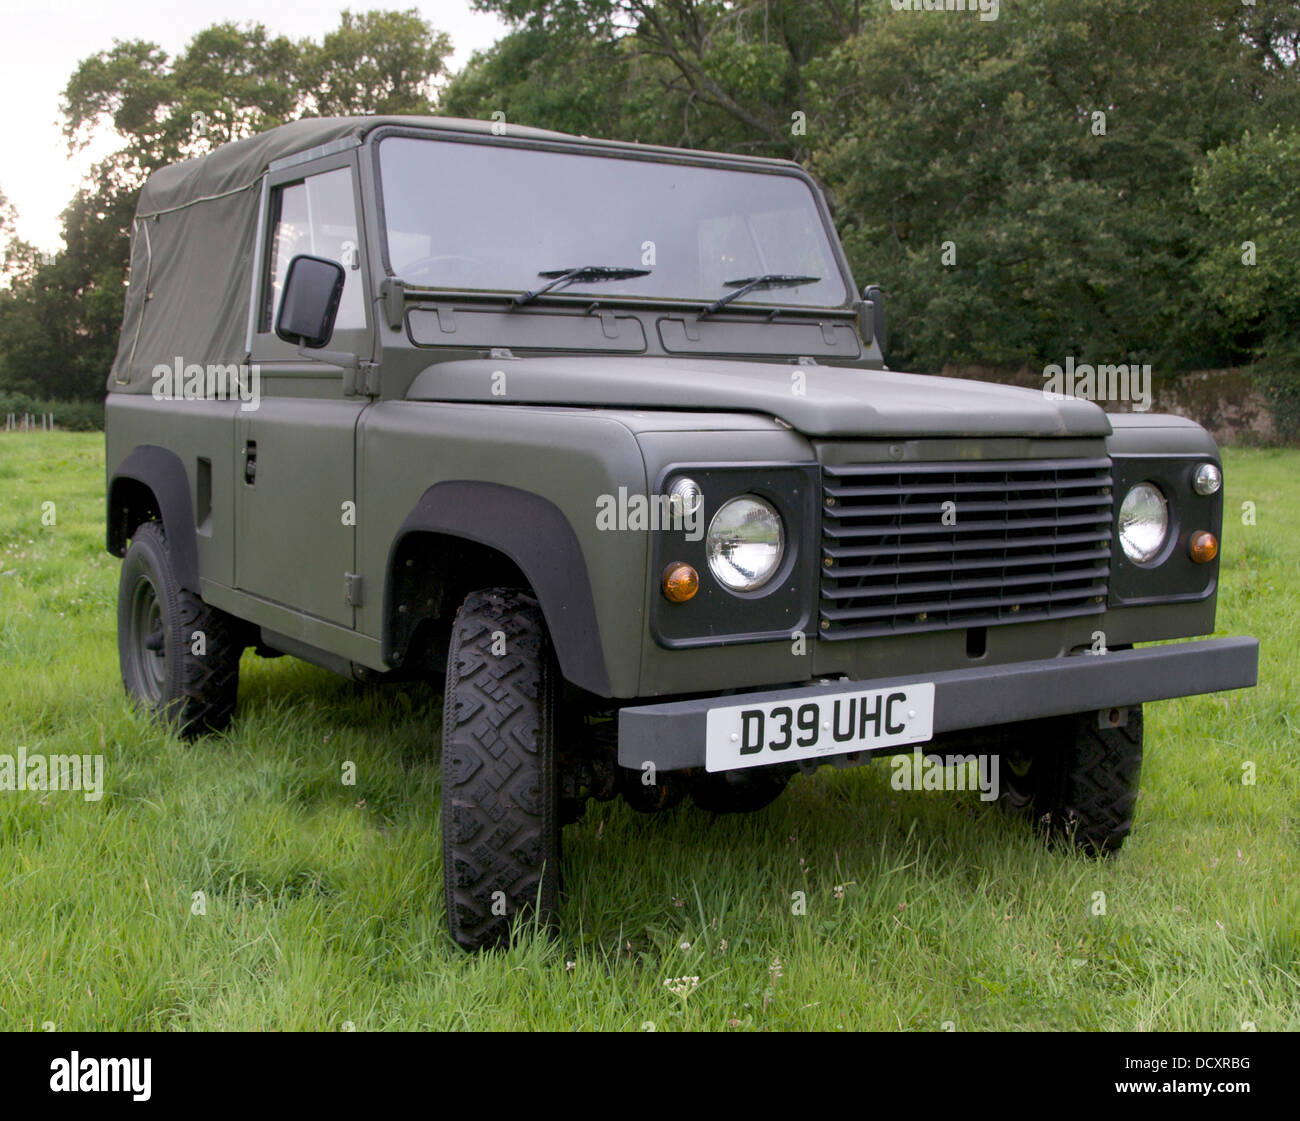 Land Rover Defender 90 Stock Photos & Land Rover Defender